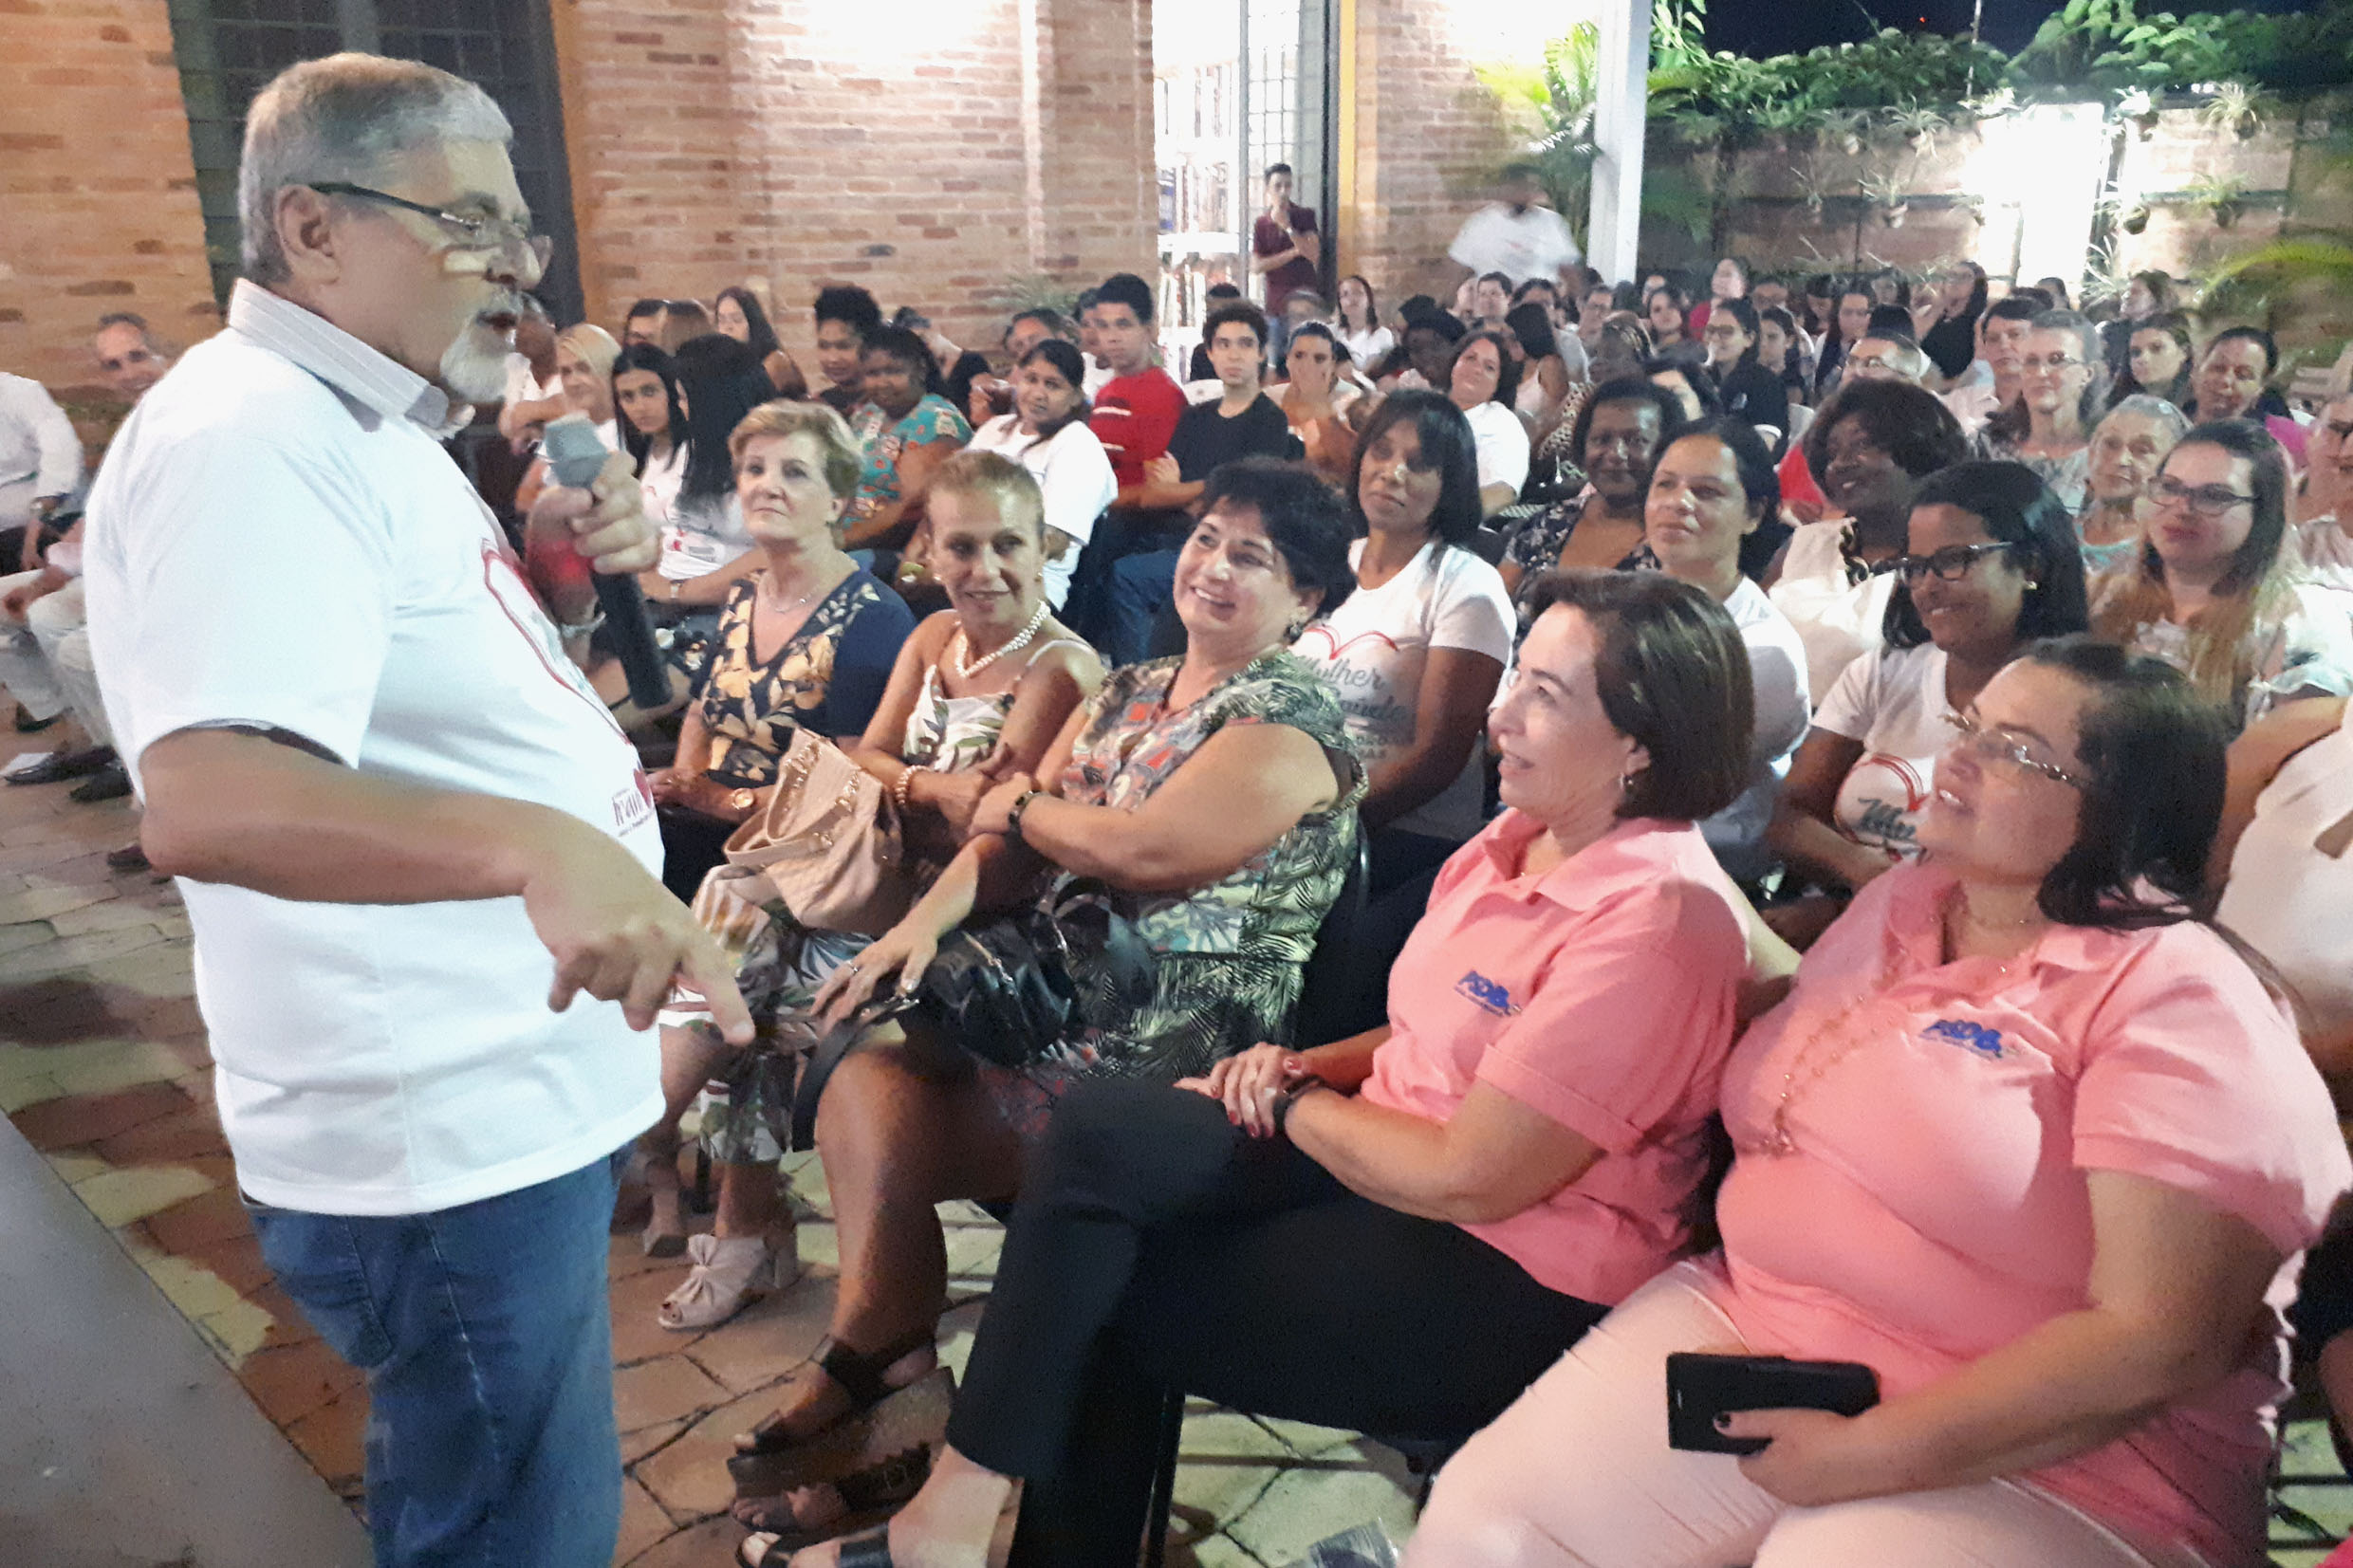 Pedro Tobias realiza palestra<a style='float:right' href='https://www3.al.sp.gov.br/repositorio/noticia/N-03-2018/fg218589.jpg' target=_blank><img src='/_img/material-file-download-white.png' width='14px' alt='Clique para baixar a imagem'></a>